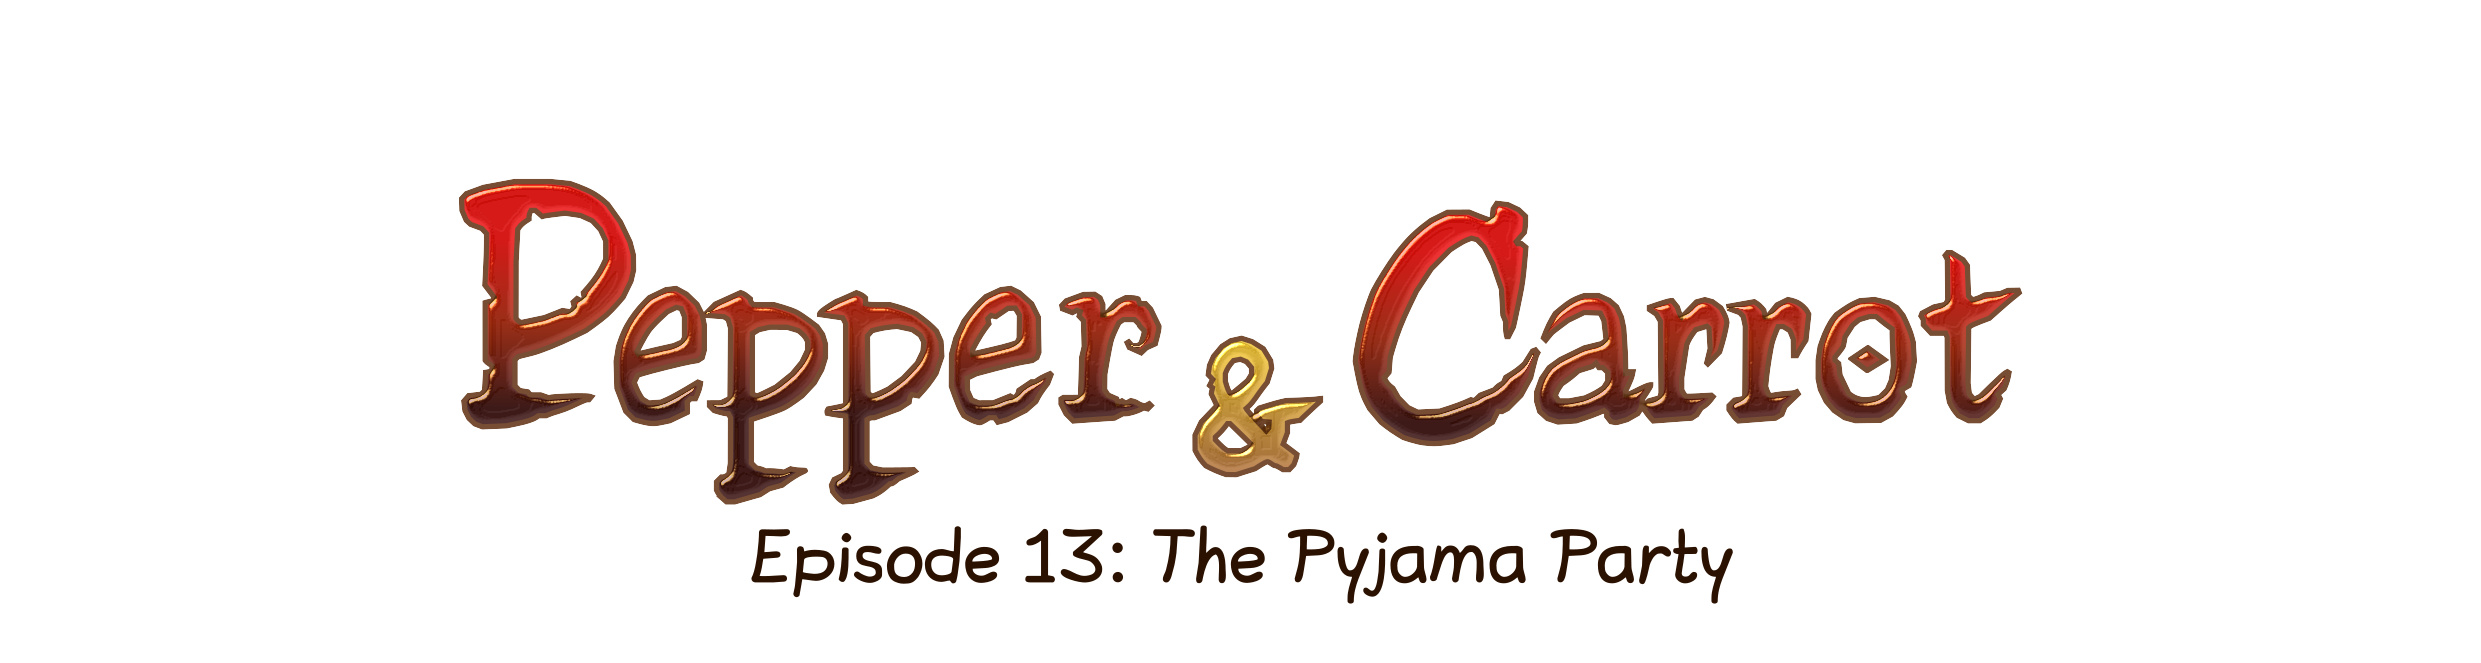 Episode 13: The Pyjama Party